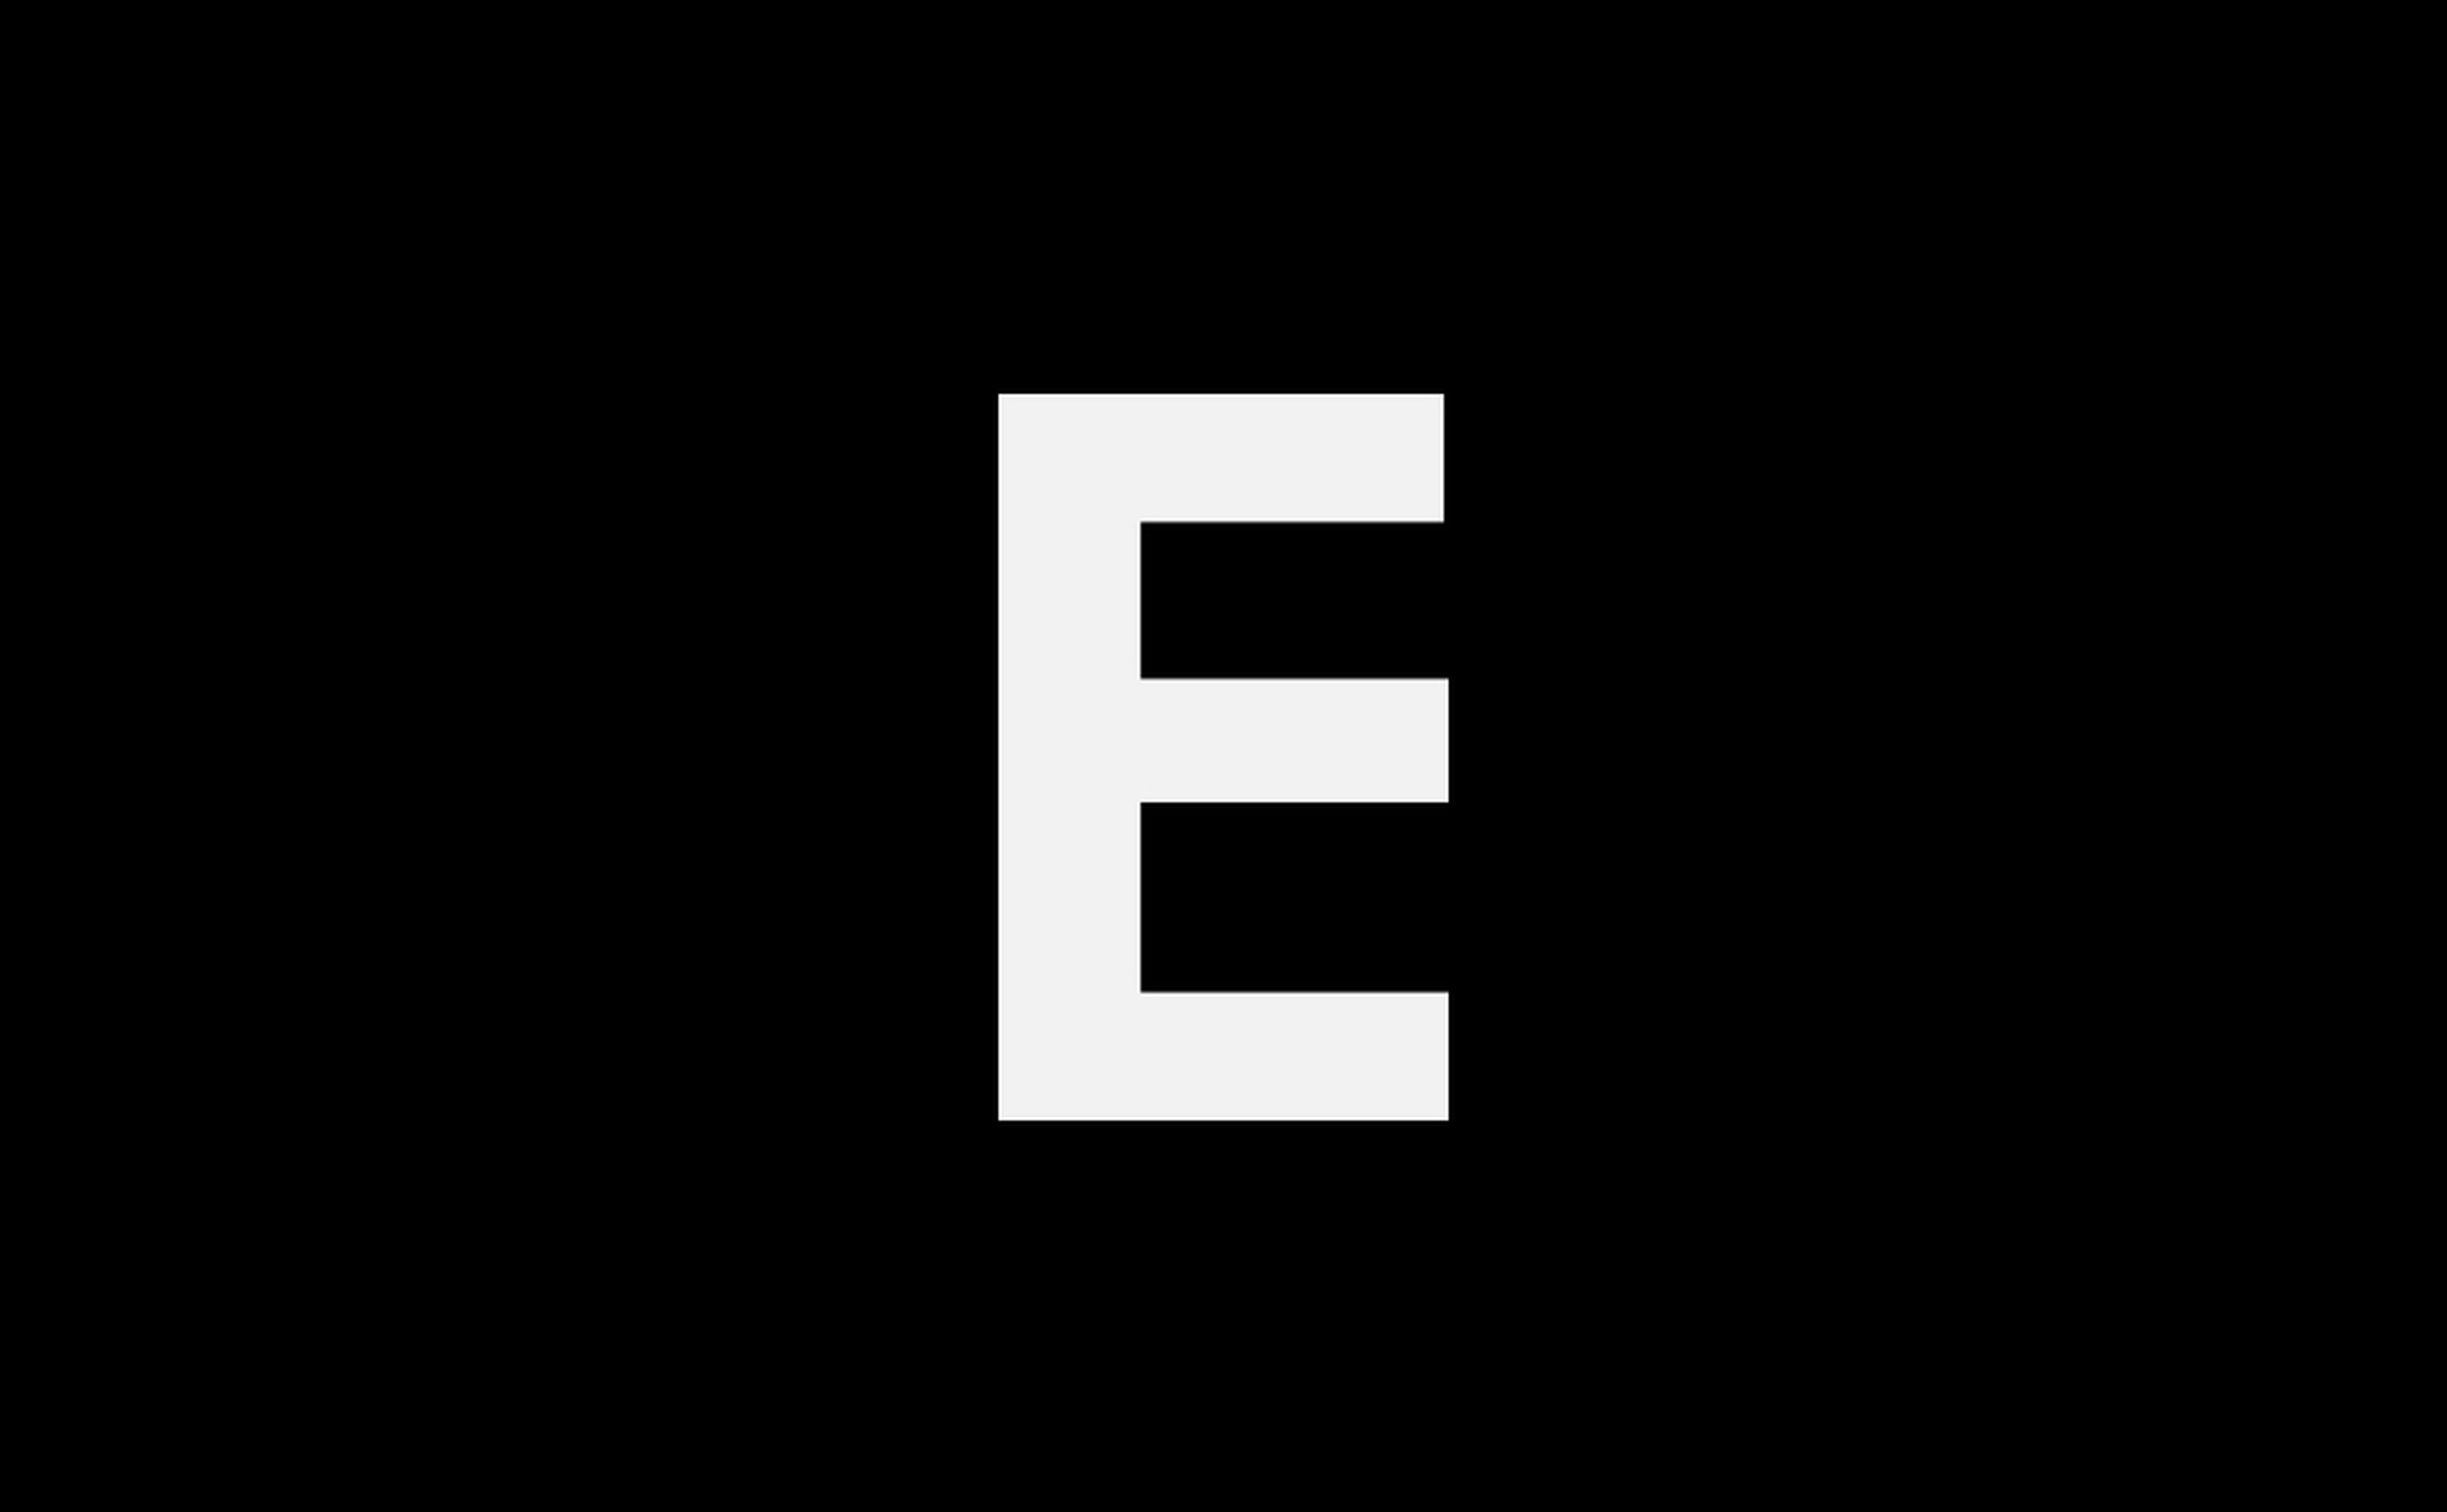 REFLECTION OF MAN ON LAKE AGAINST SKY